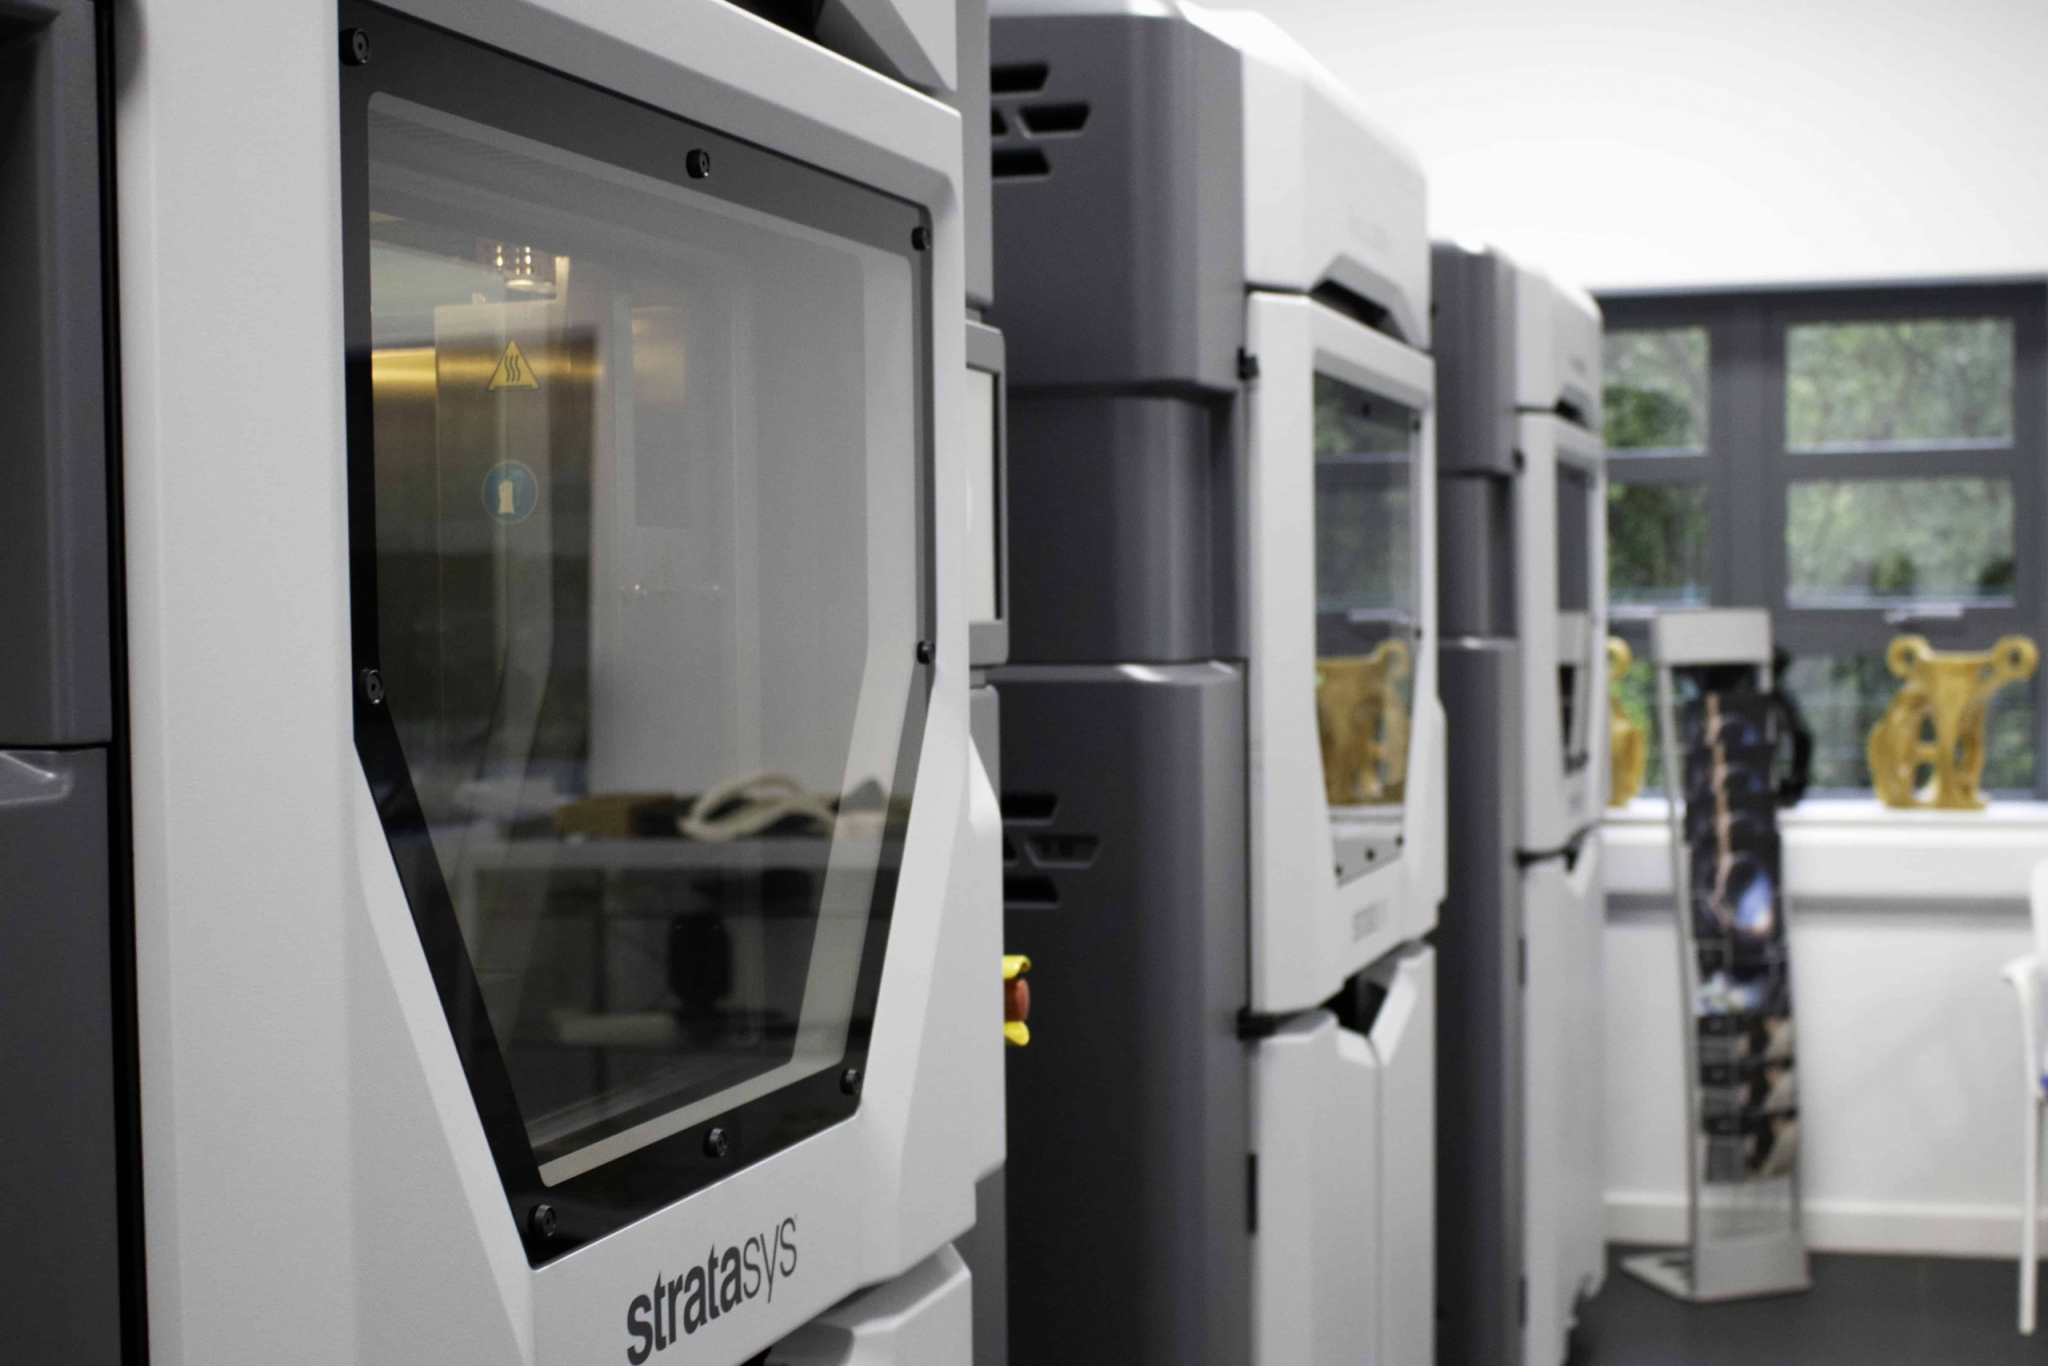 Stratasys 3d printing service uk showroom